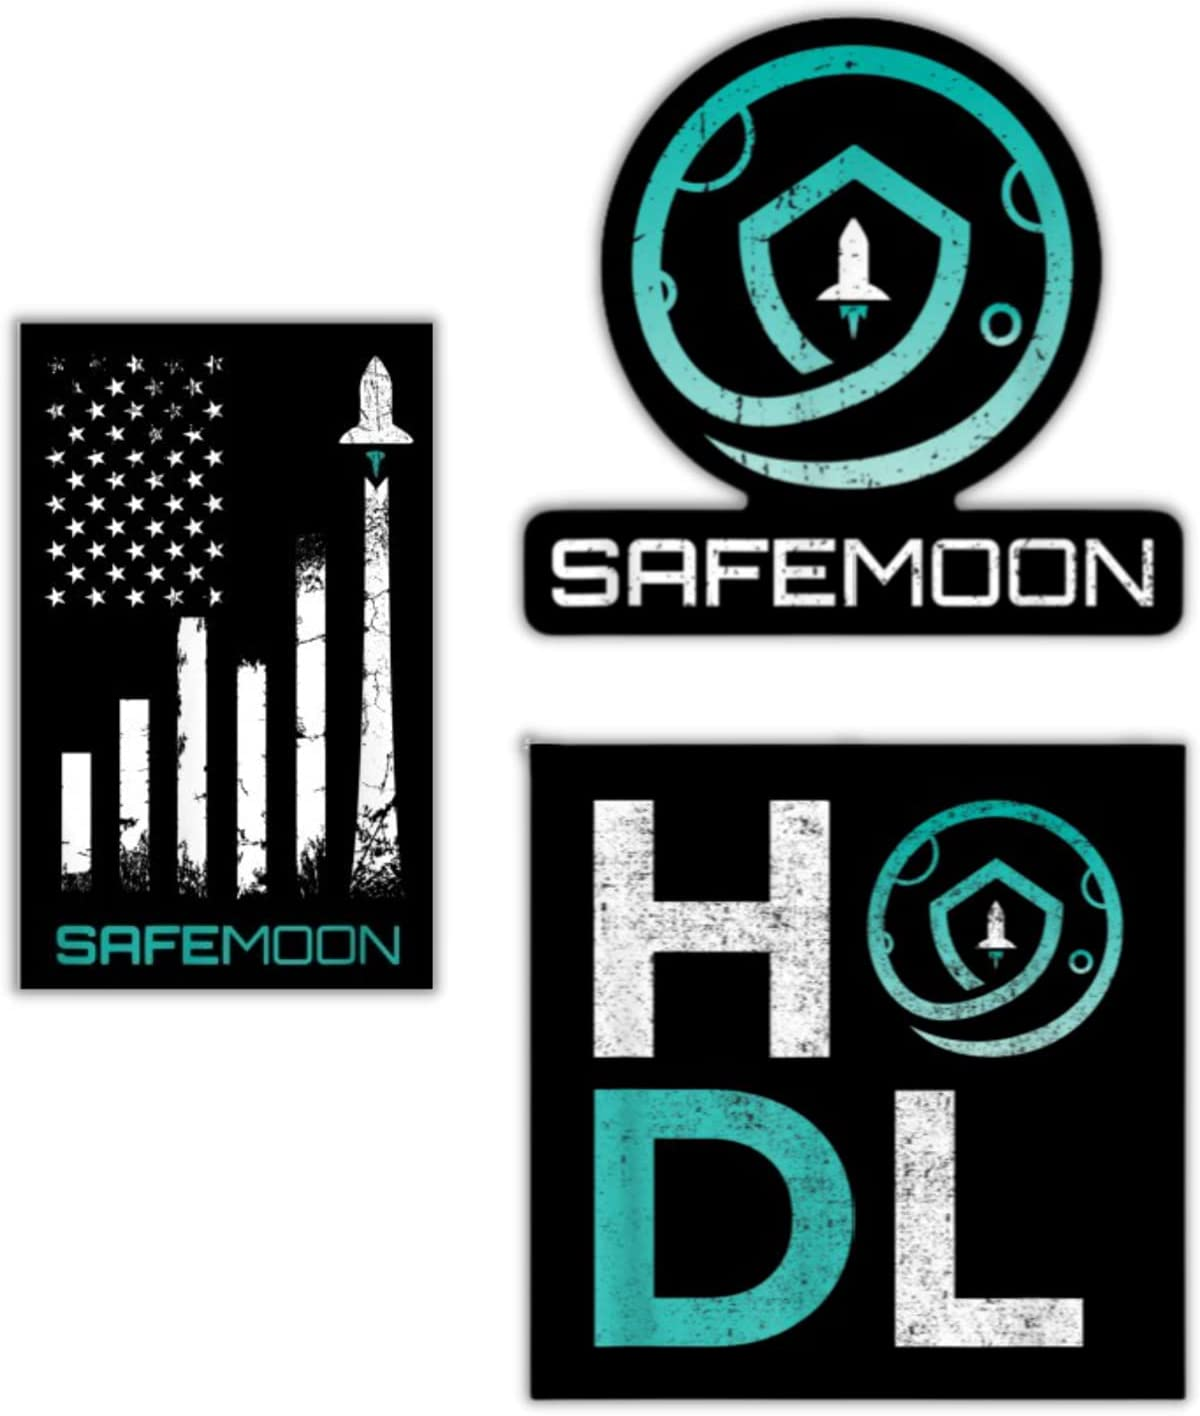 Chattanooga Crypto HODLing Co Safemoon Cryptocurrency Stickers (3 pack)   for fans of Crypto, Dogecoin, Bitcoin, Ethereum, Cardano, Safemoon shirt   Stickers for adults   Stickers for teens   Laptop stickers   Safemoon Sticker   Safemoon Stickers   Barstool Sports